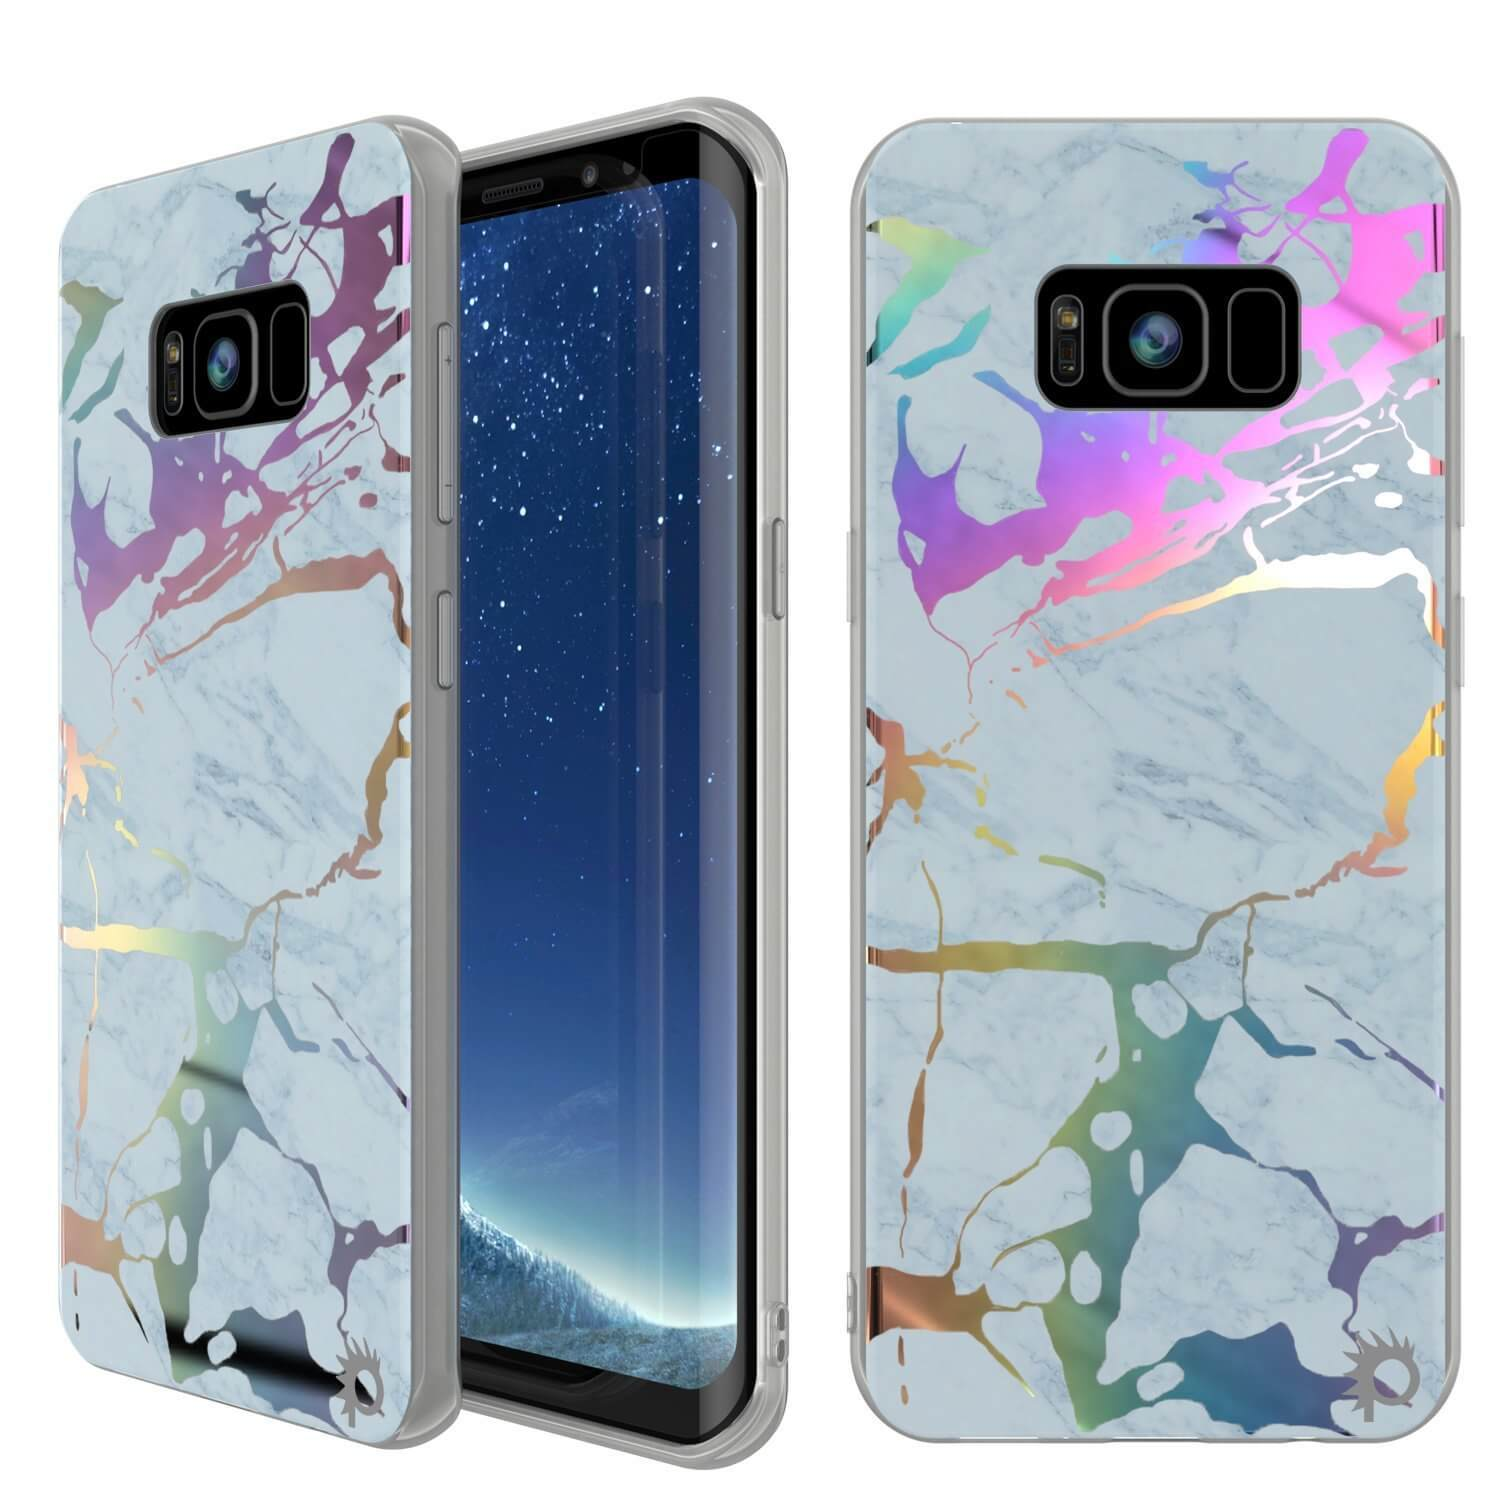 Galaxy S8 Plus Marble Case, Protective Full Body Cover[Blue Marmo]